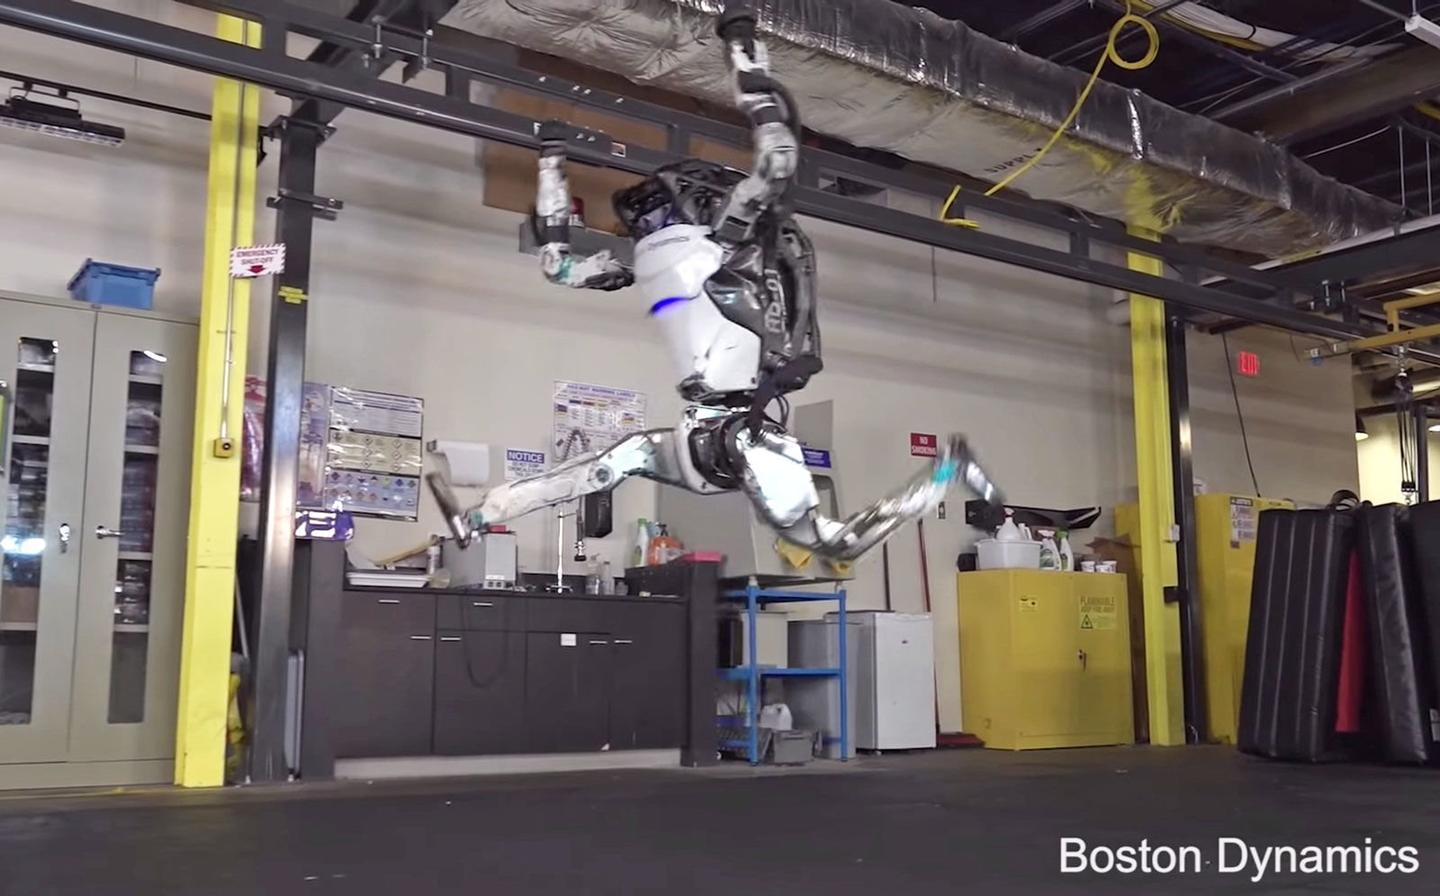 Atlas can now perform complex gymnastic routines